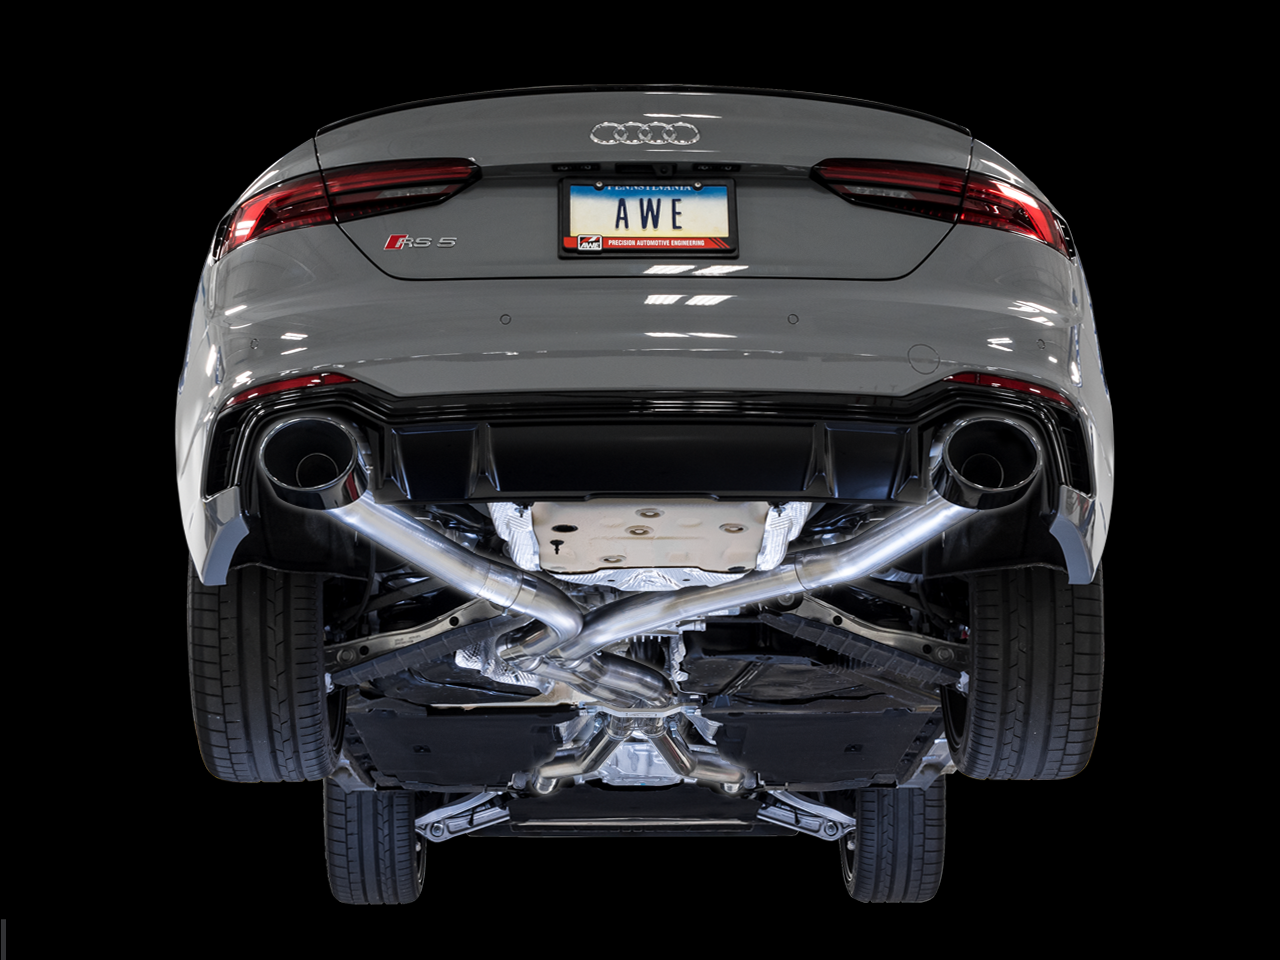 AWE Track Edition Exhaust for Audi B9 RS 5 Coupe - Non-Resonated - Diamond Black RS-style Tips